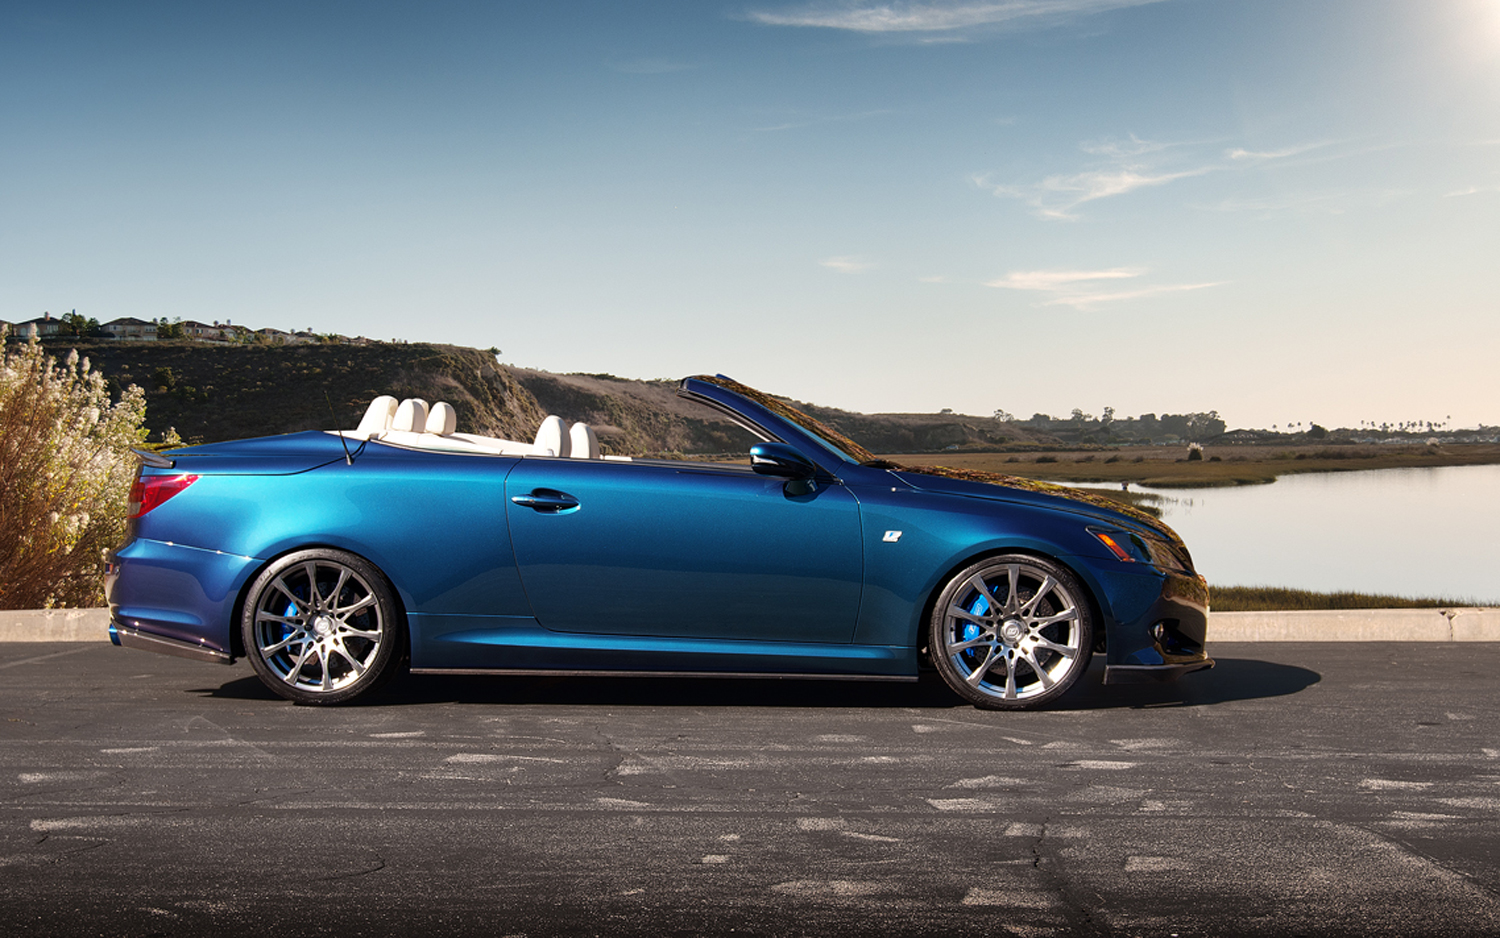 2014 Lexus IS 250 C #4